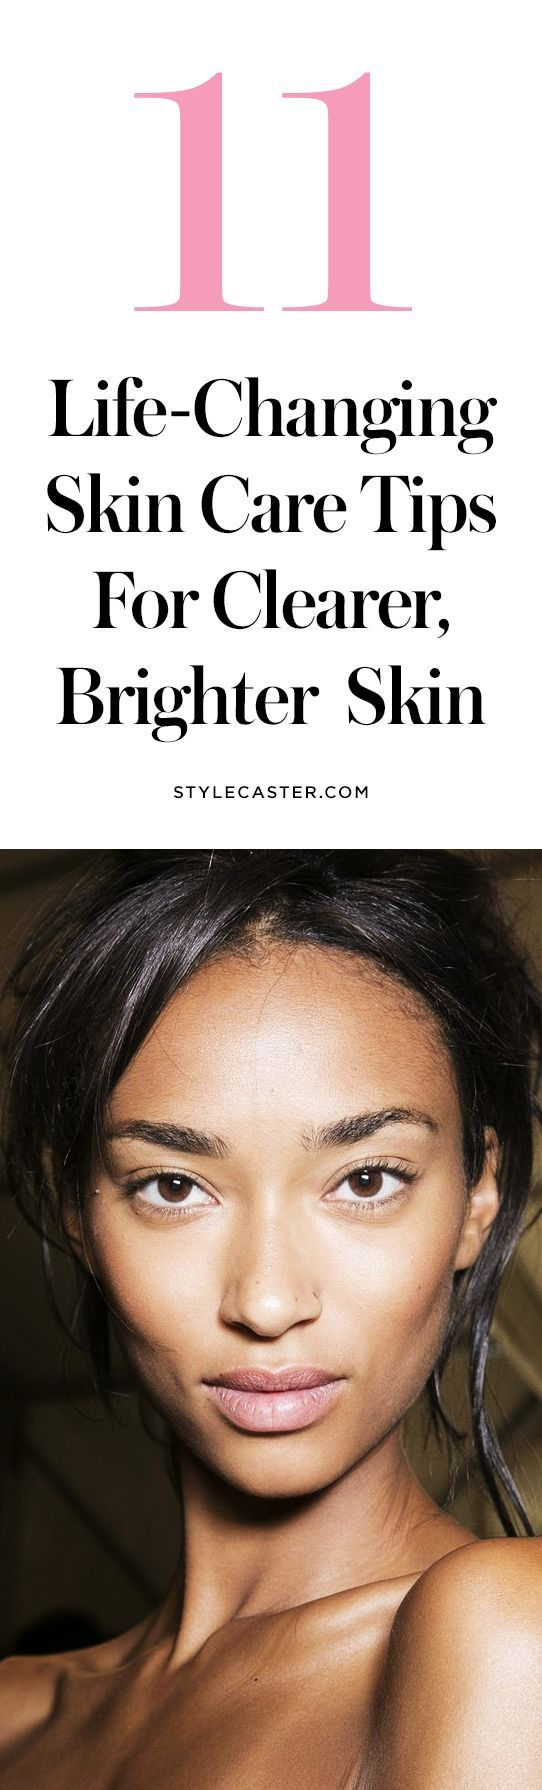 11 skin care tips for clearer, brighter skin | Say goodbye to acne and blemishes!